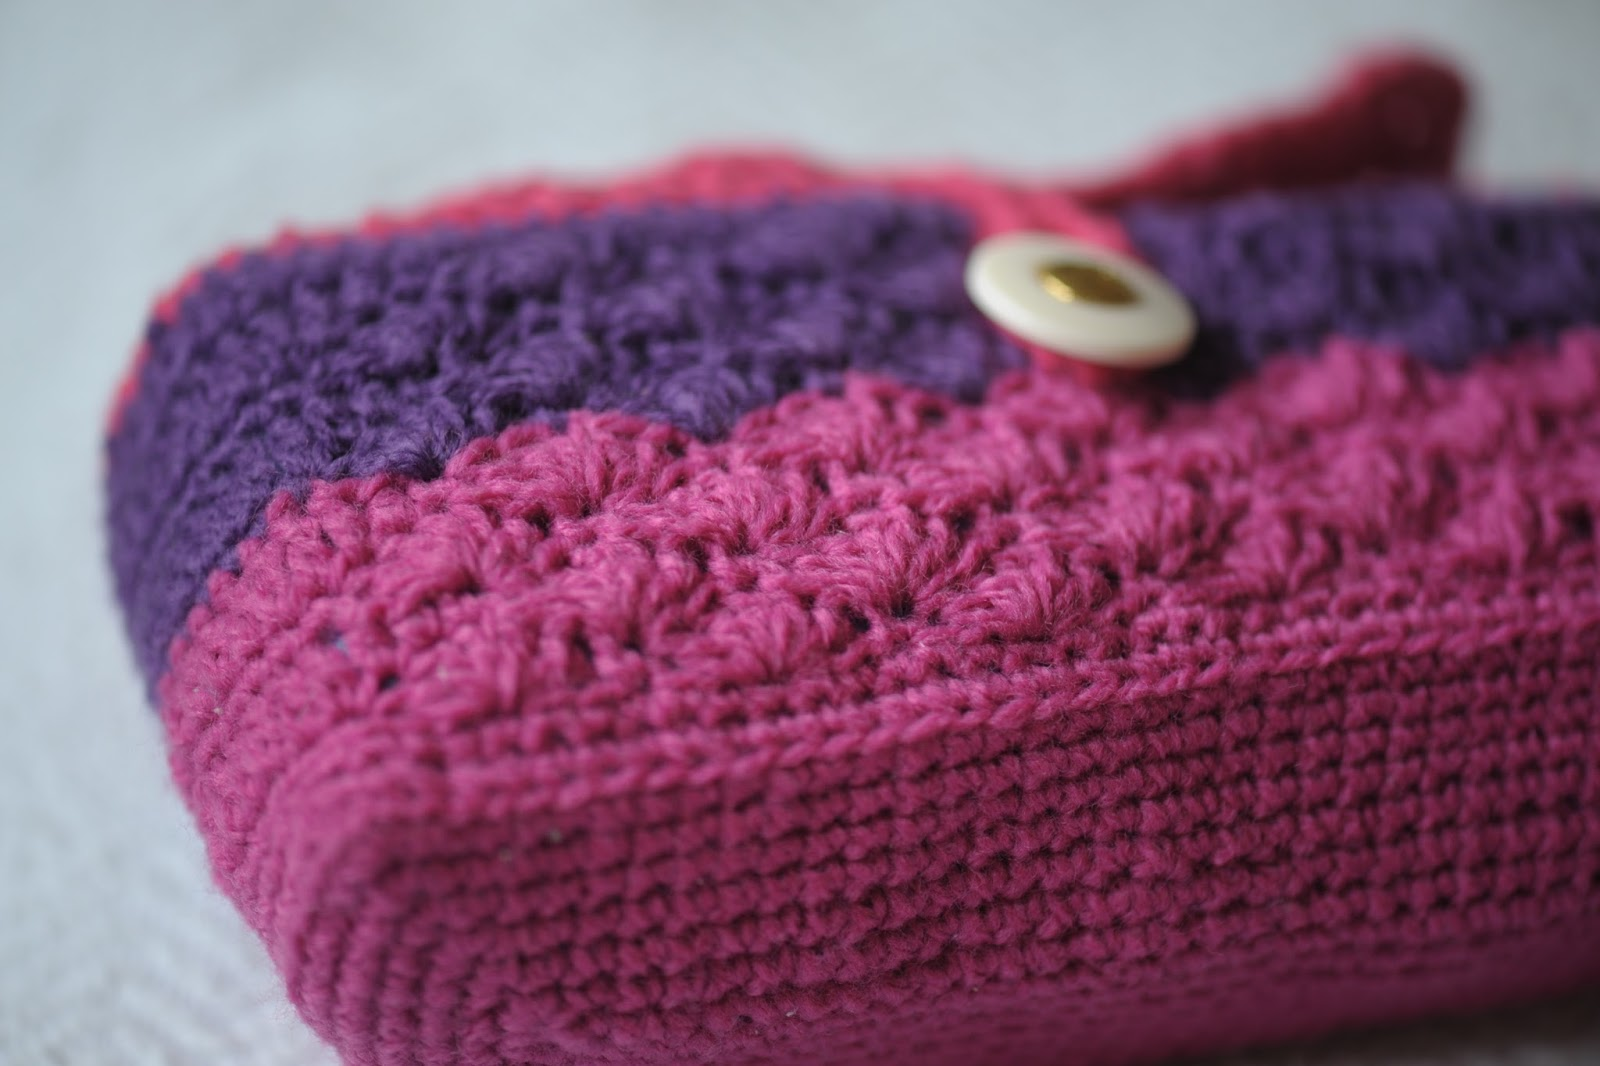 Crochet Cosmetic Bag Pattern : Its a crafty world!: Crocheted Toiletry Bag